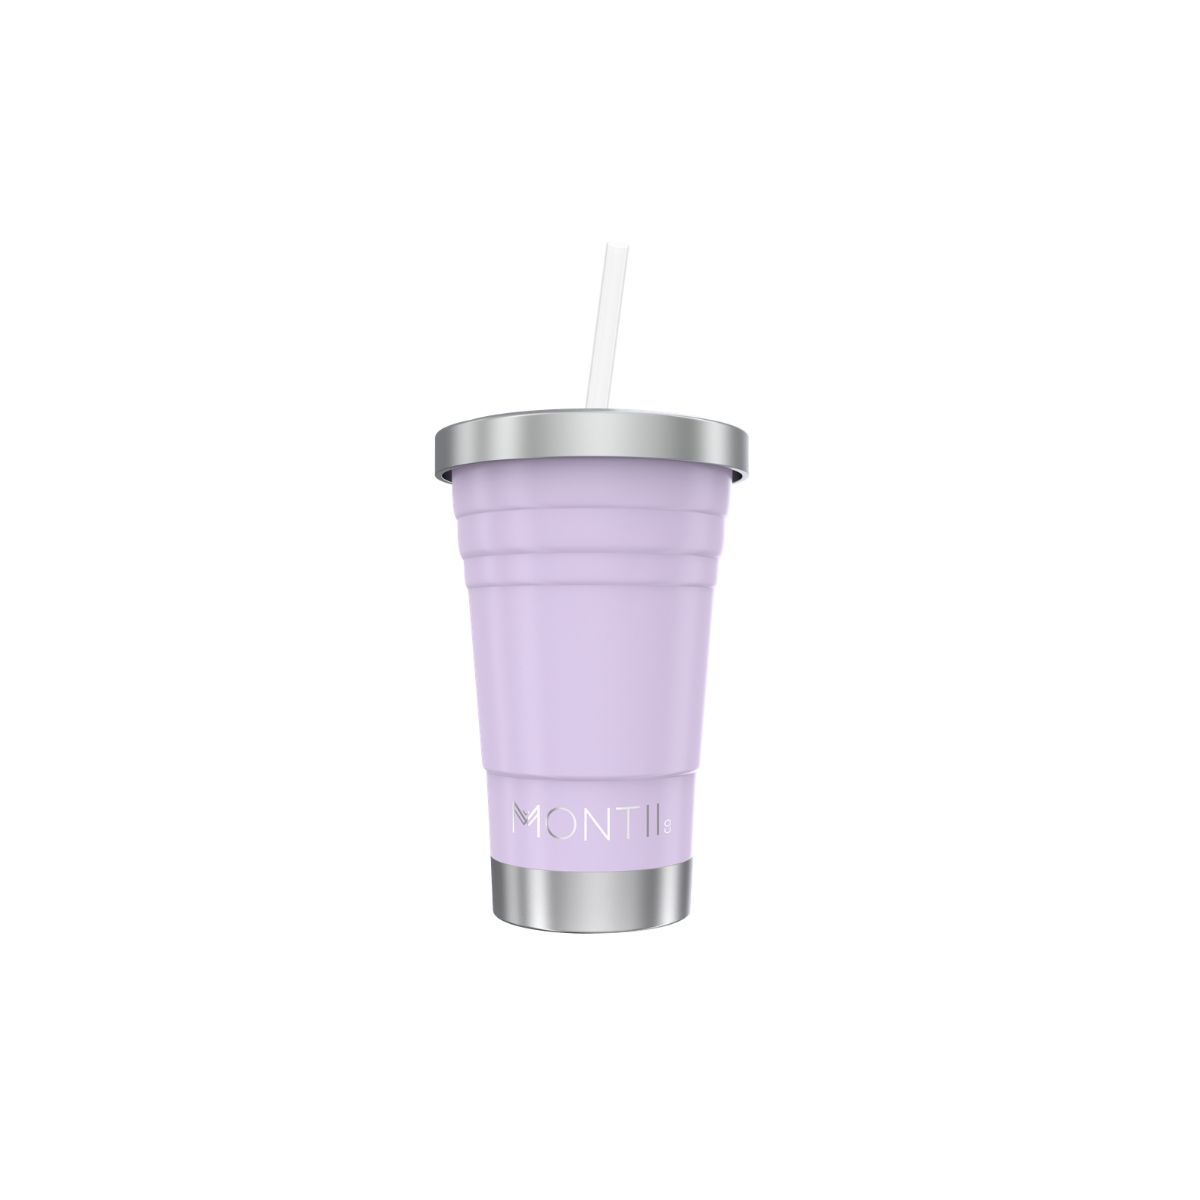 MontiiCo Mini Smoothie Cup (Lavender)